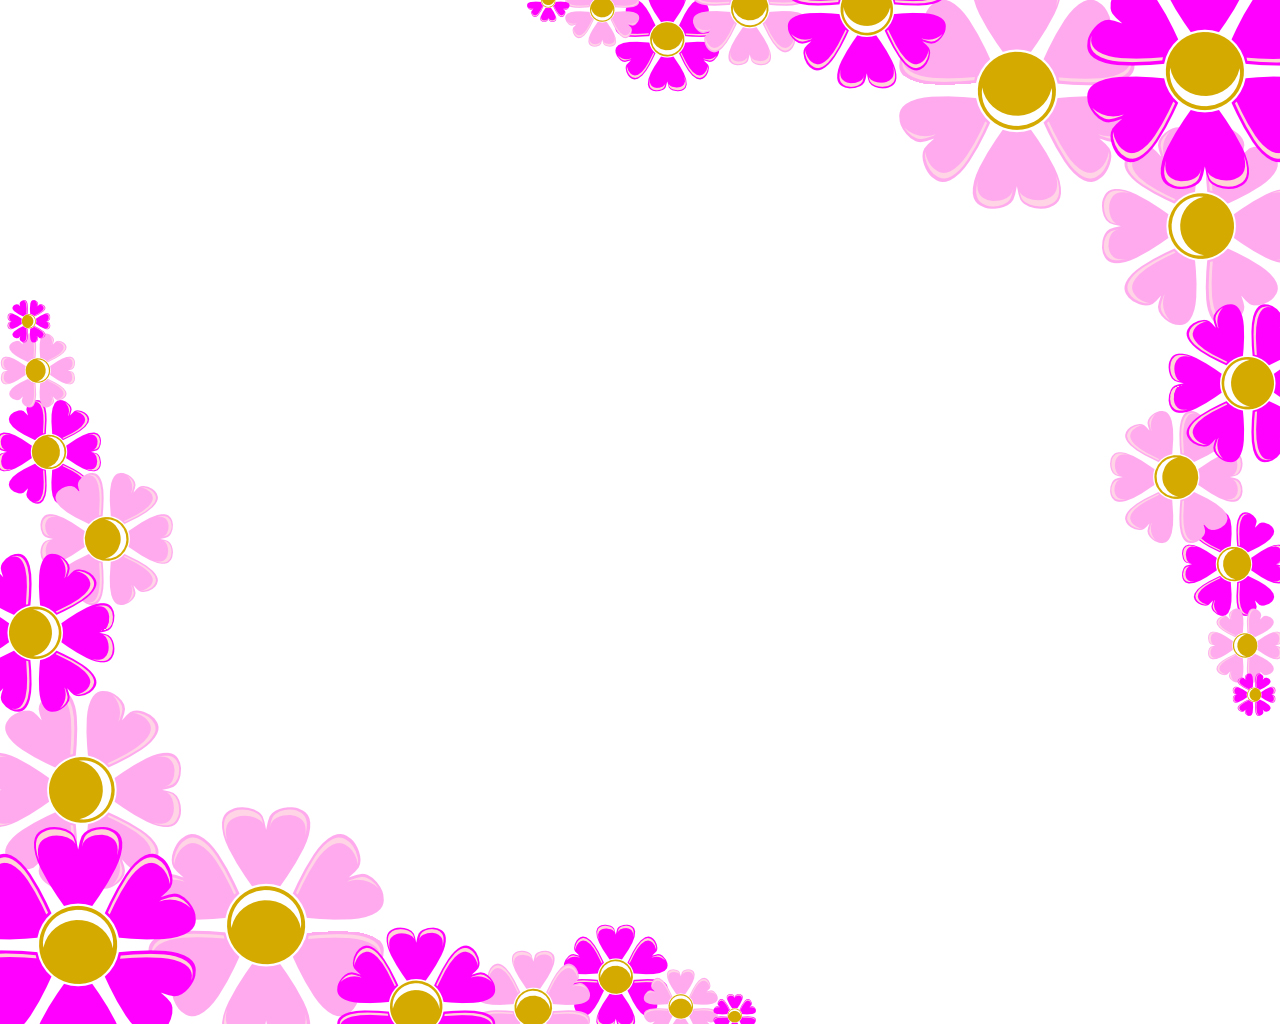 Decoration clipart powerpoint presentation. Pink flower corner backgrounds